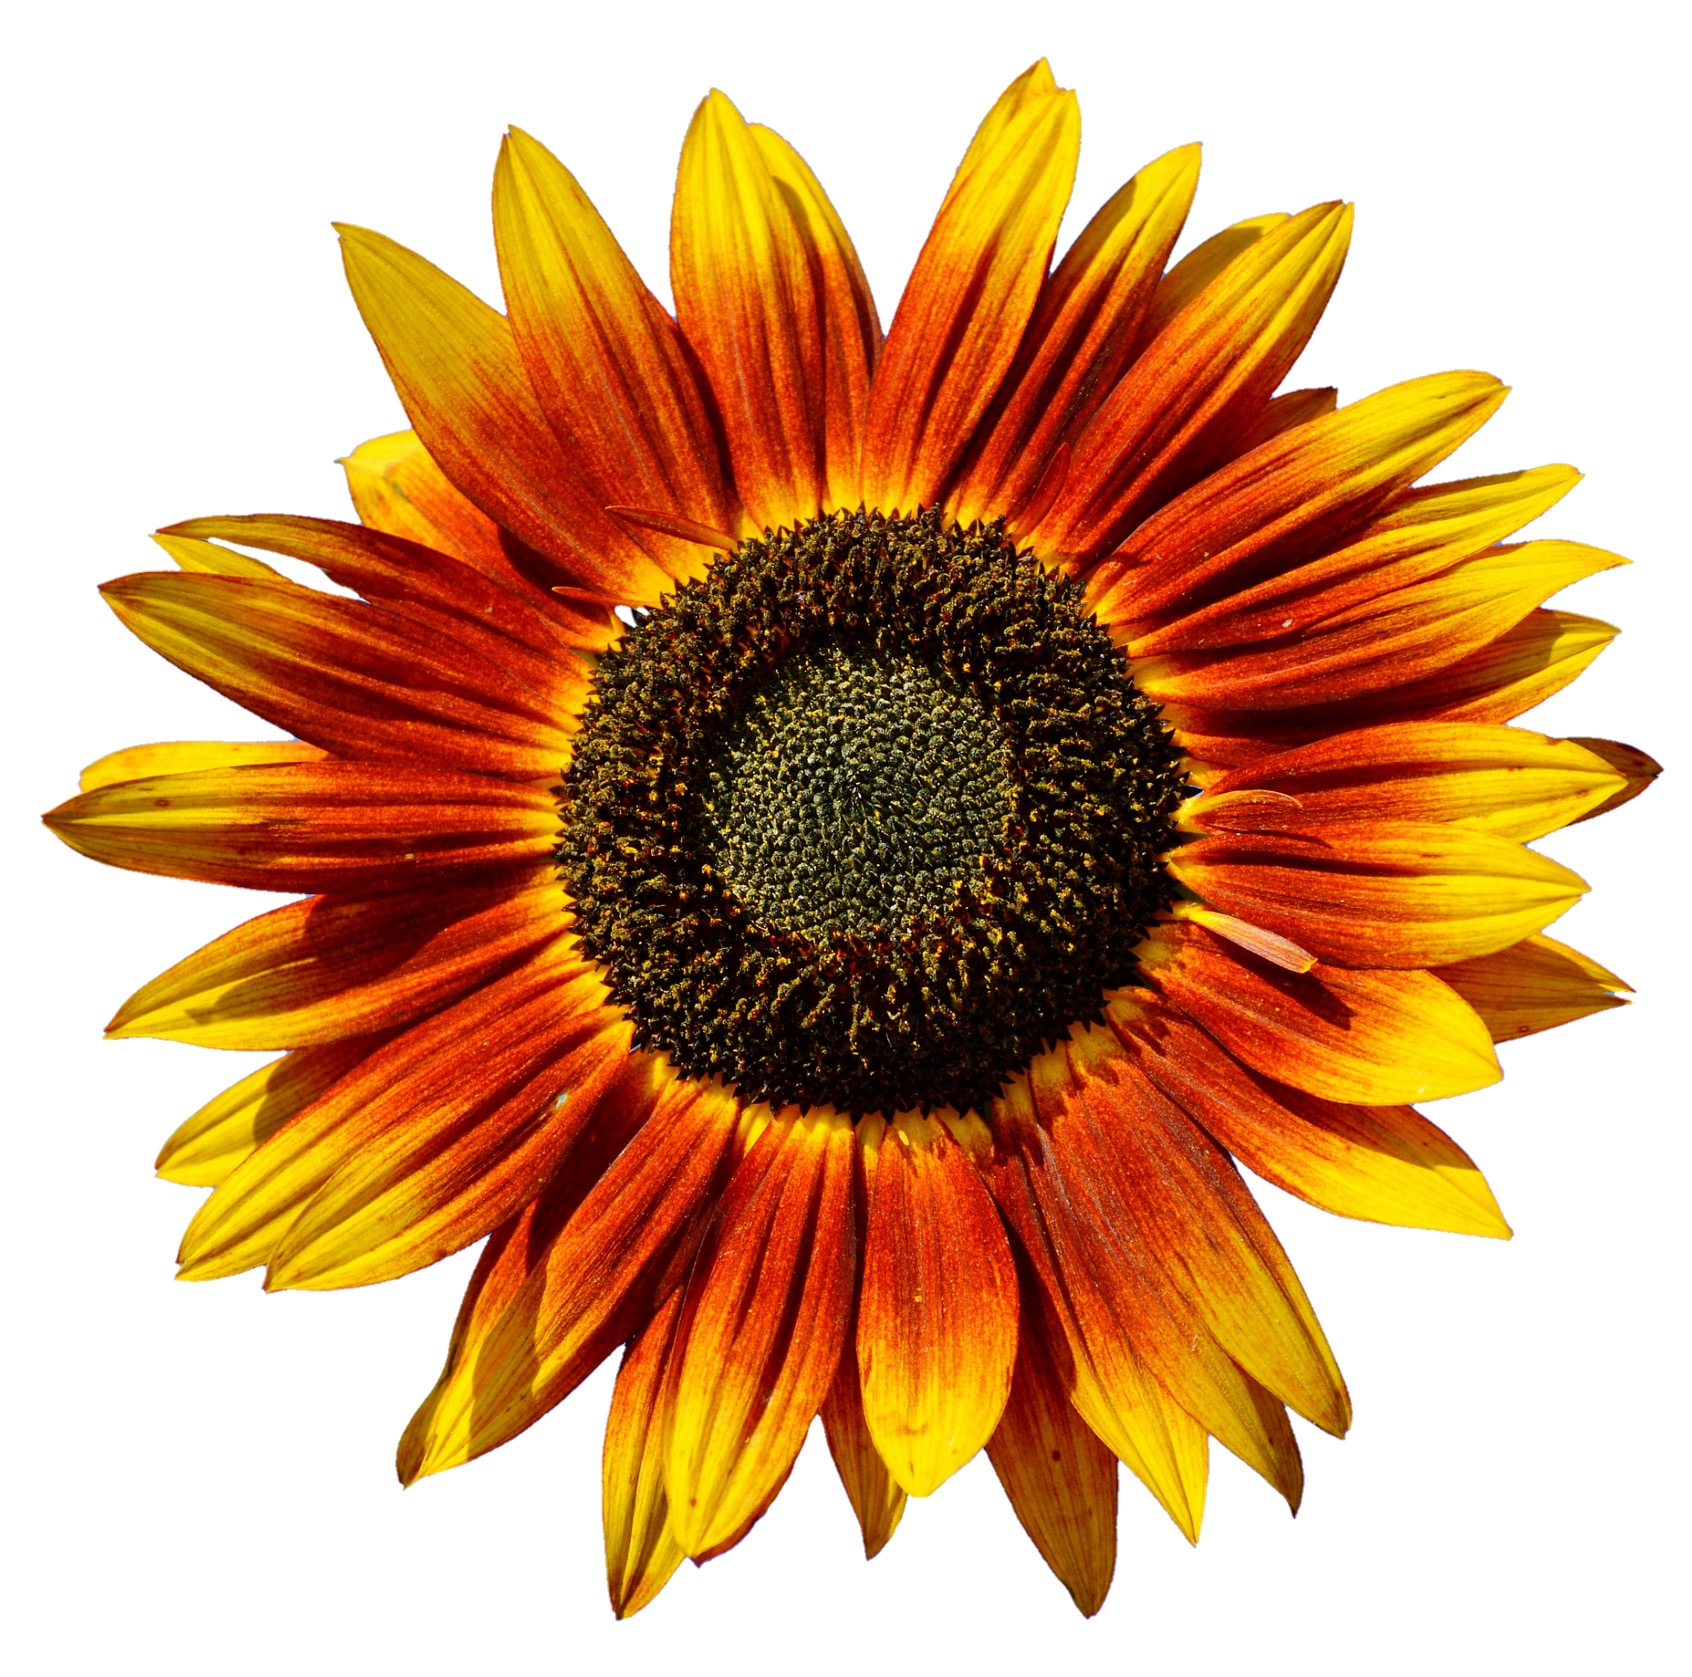 Passion Eye Serum contains Vitamin E derived from sunflowers